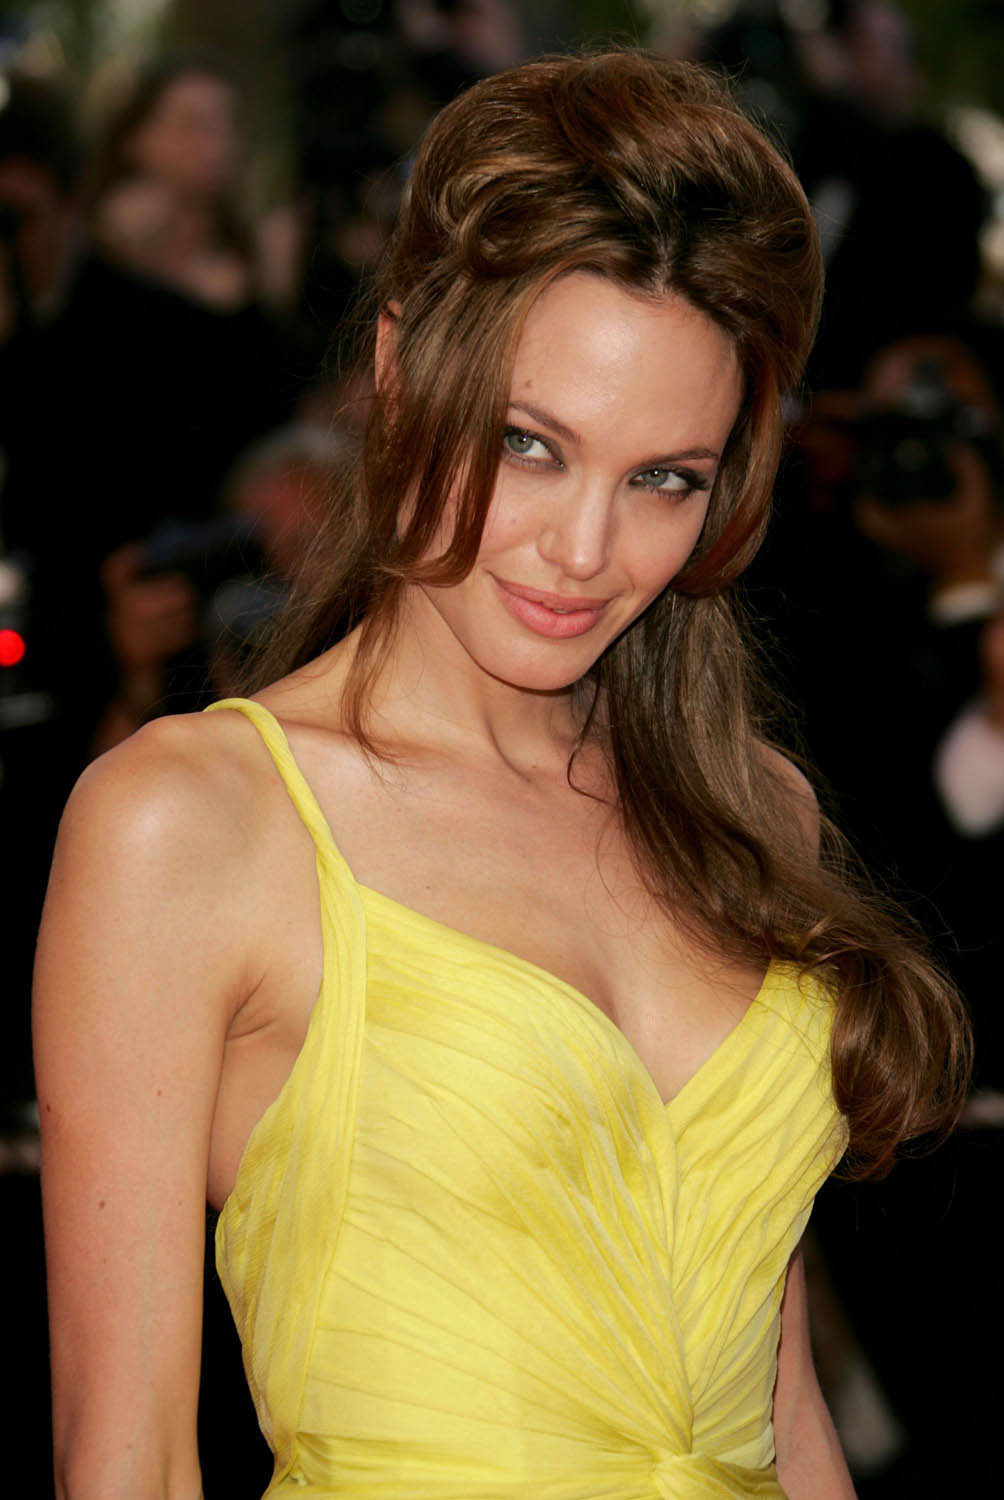 Angelina jolie breast surgery video